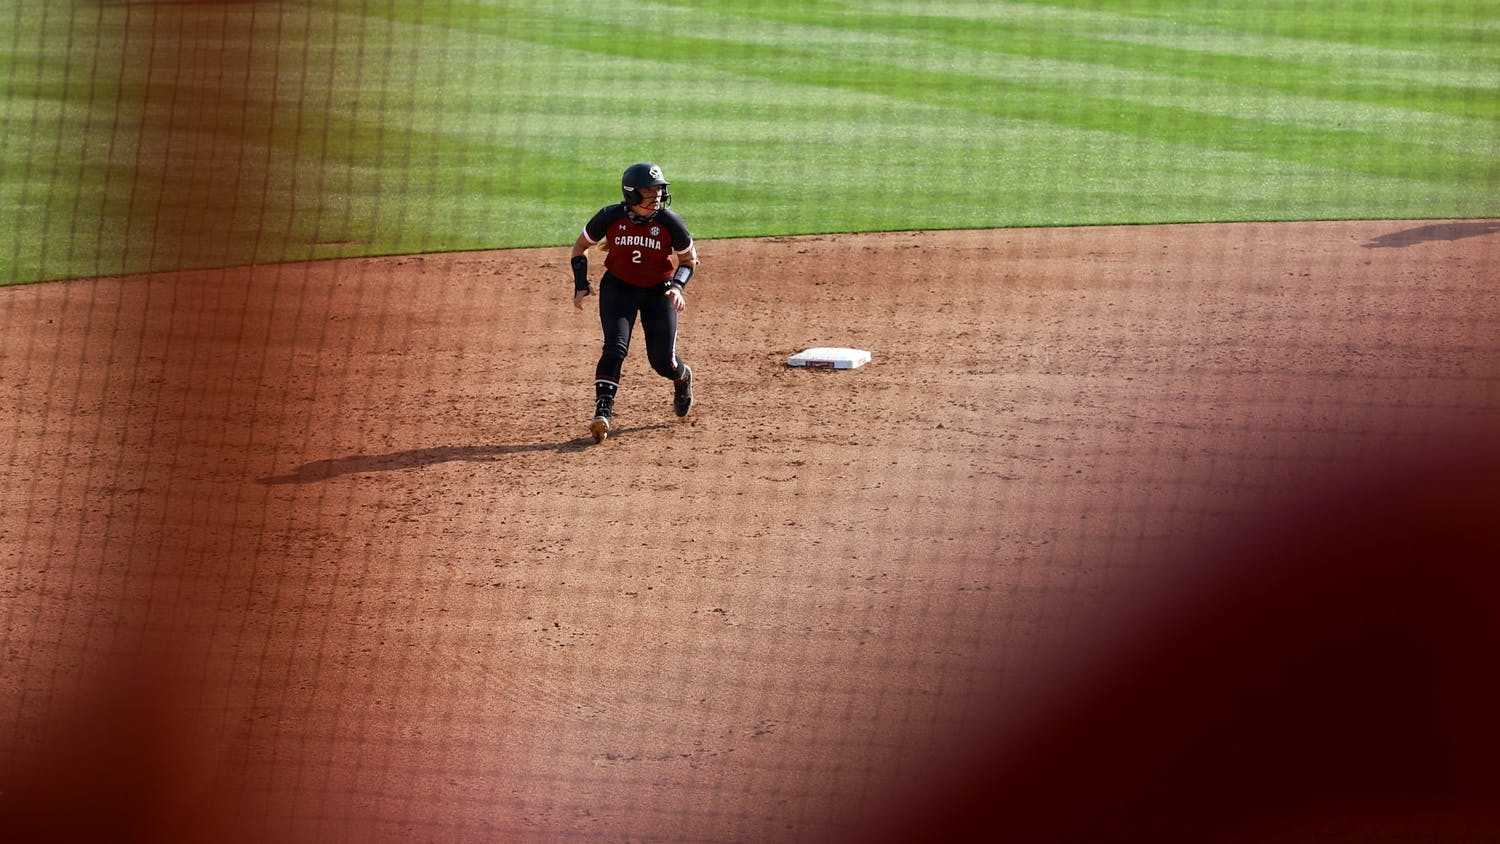 Graduate student infielder Kenzi Maguire stands away from second base in preparation to run to third base.